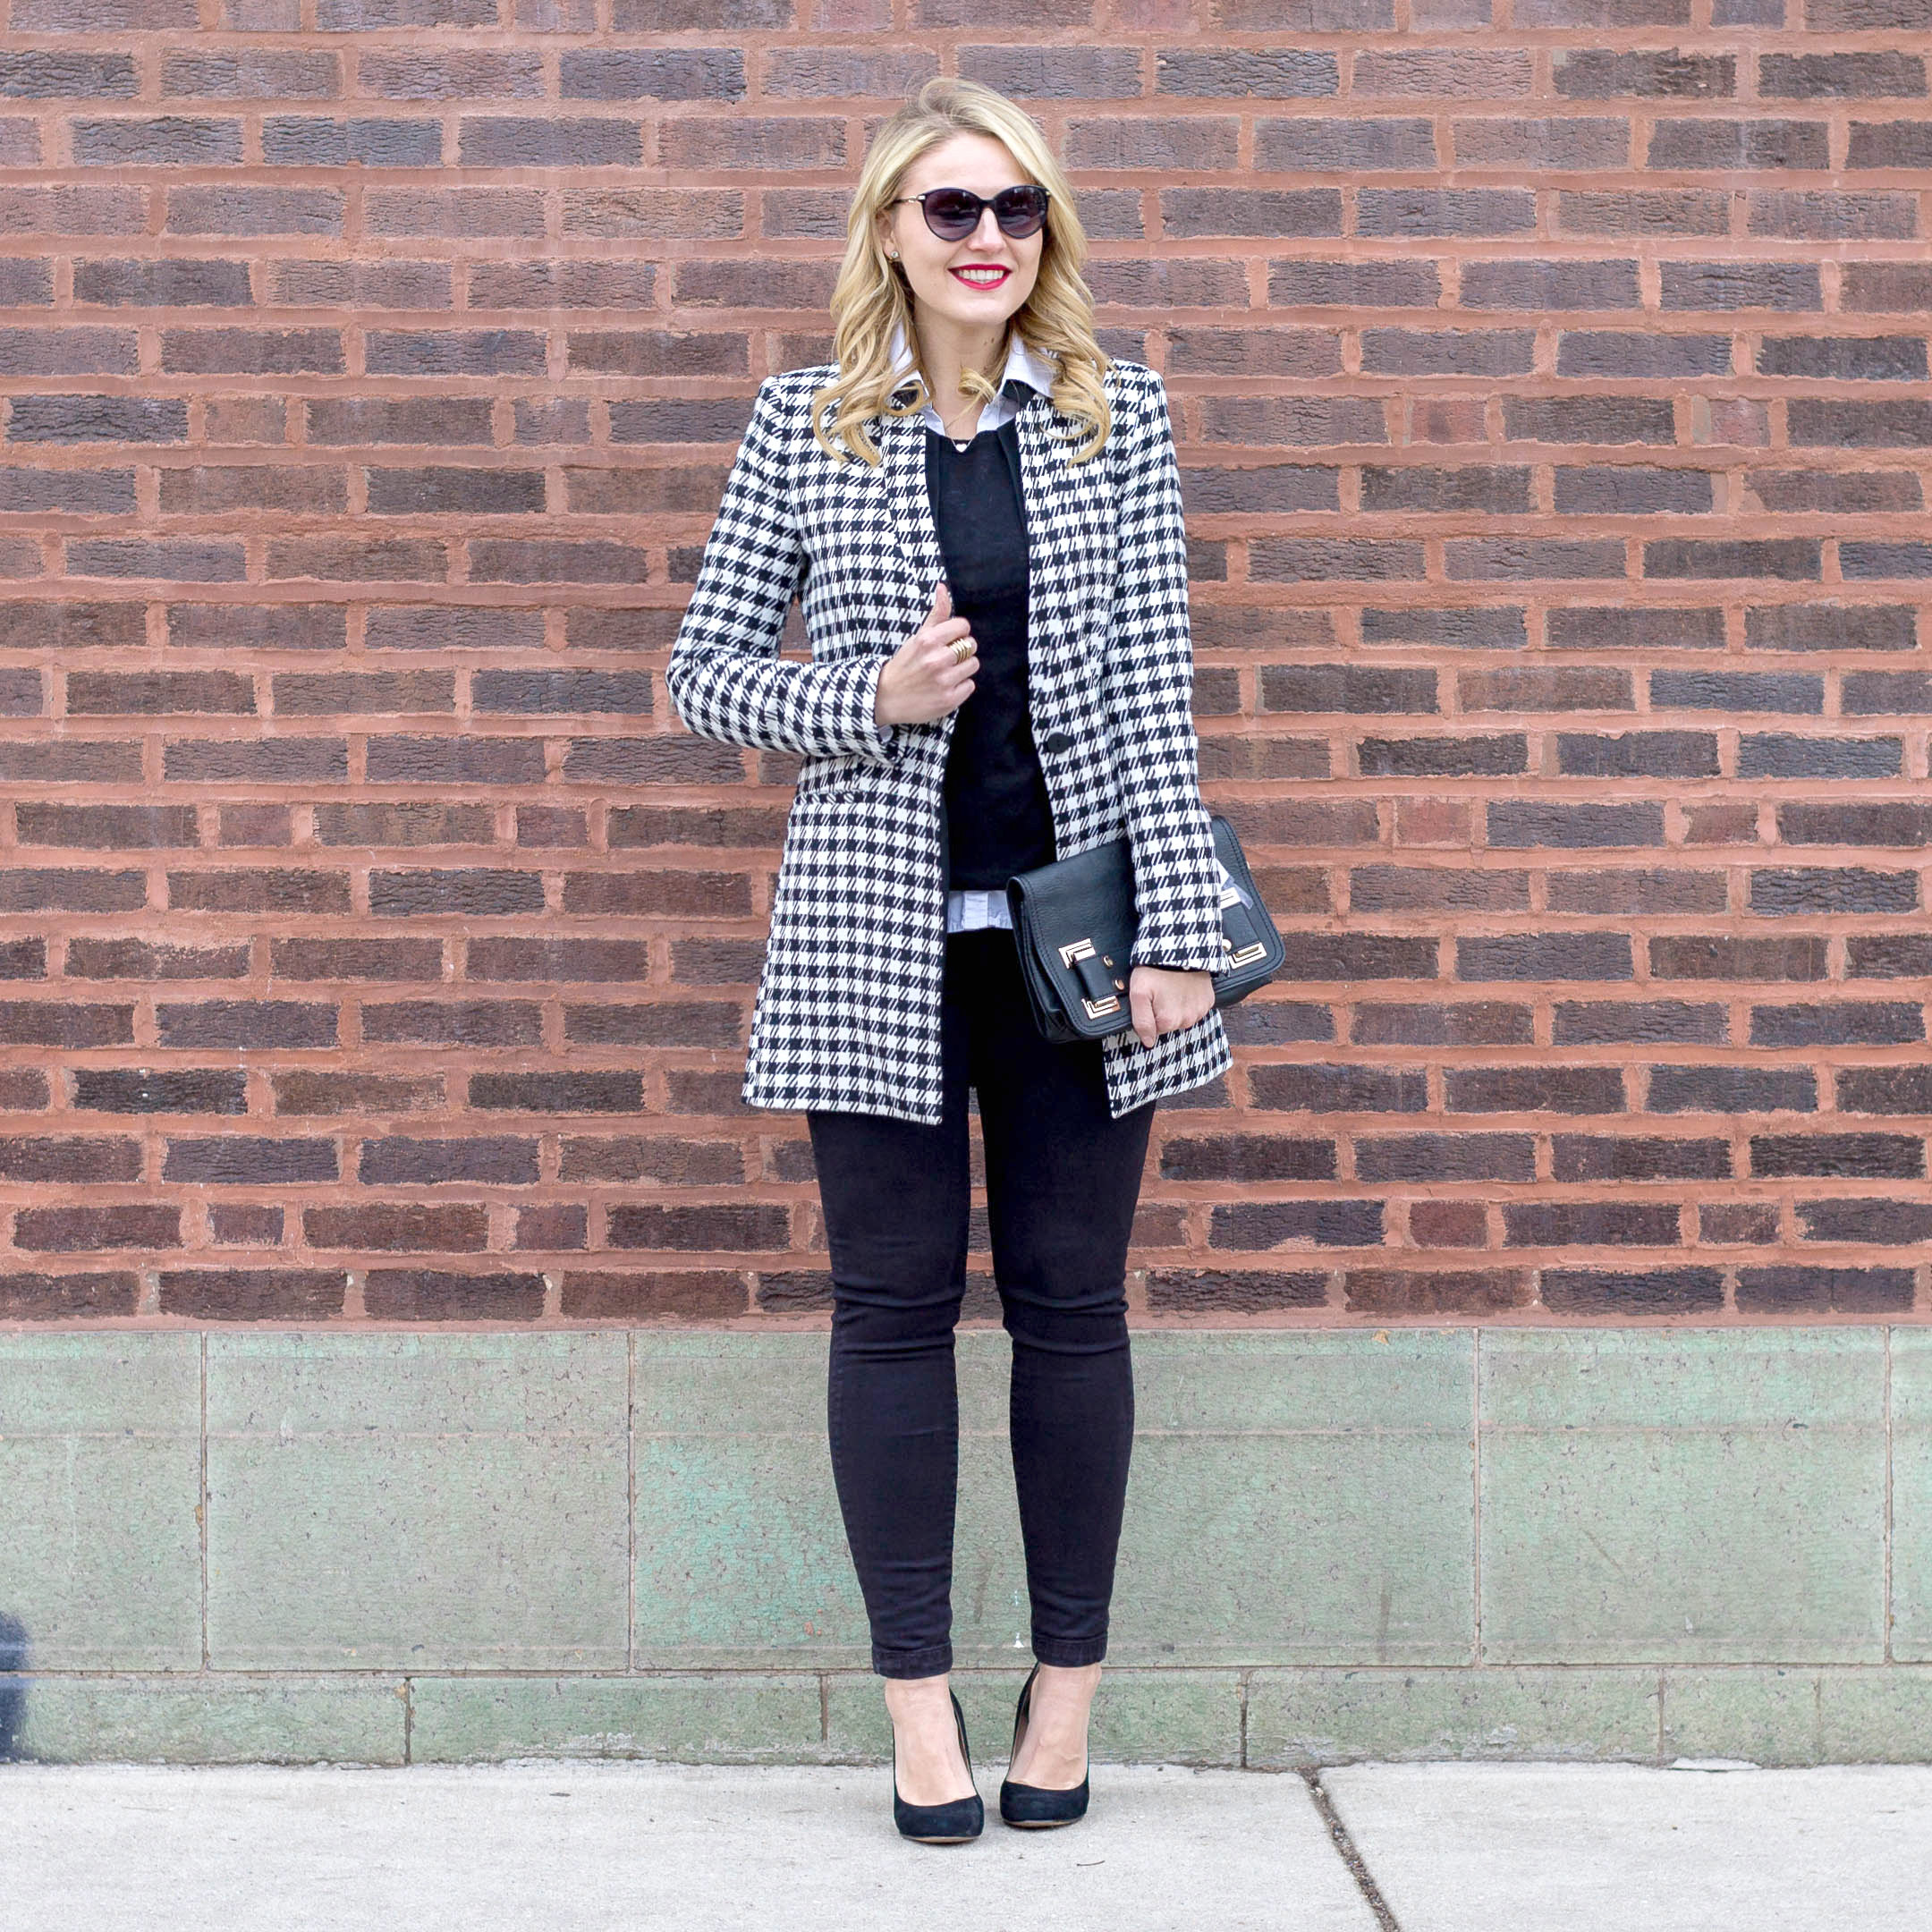 0a895e9c Zara Houndstooth Coat with an all black and white outfit